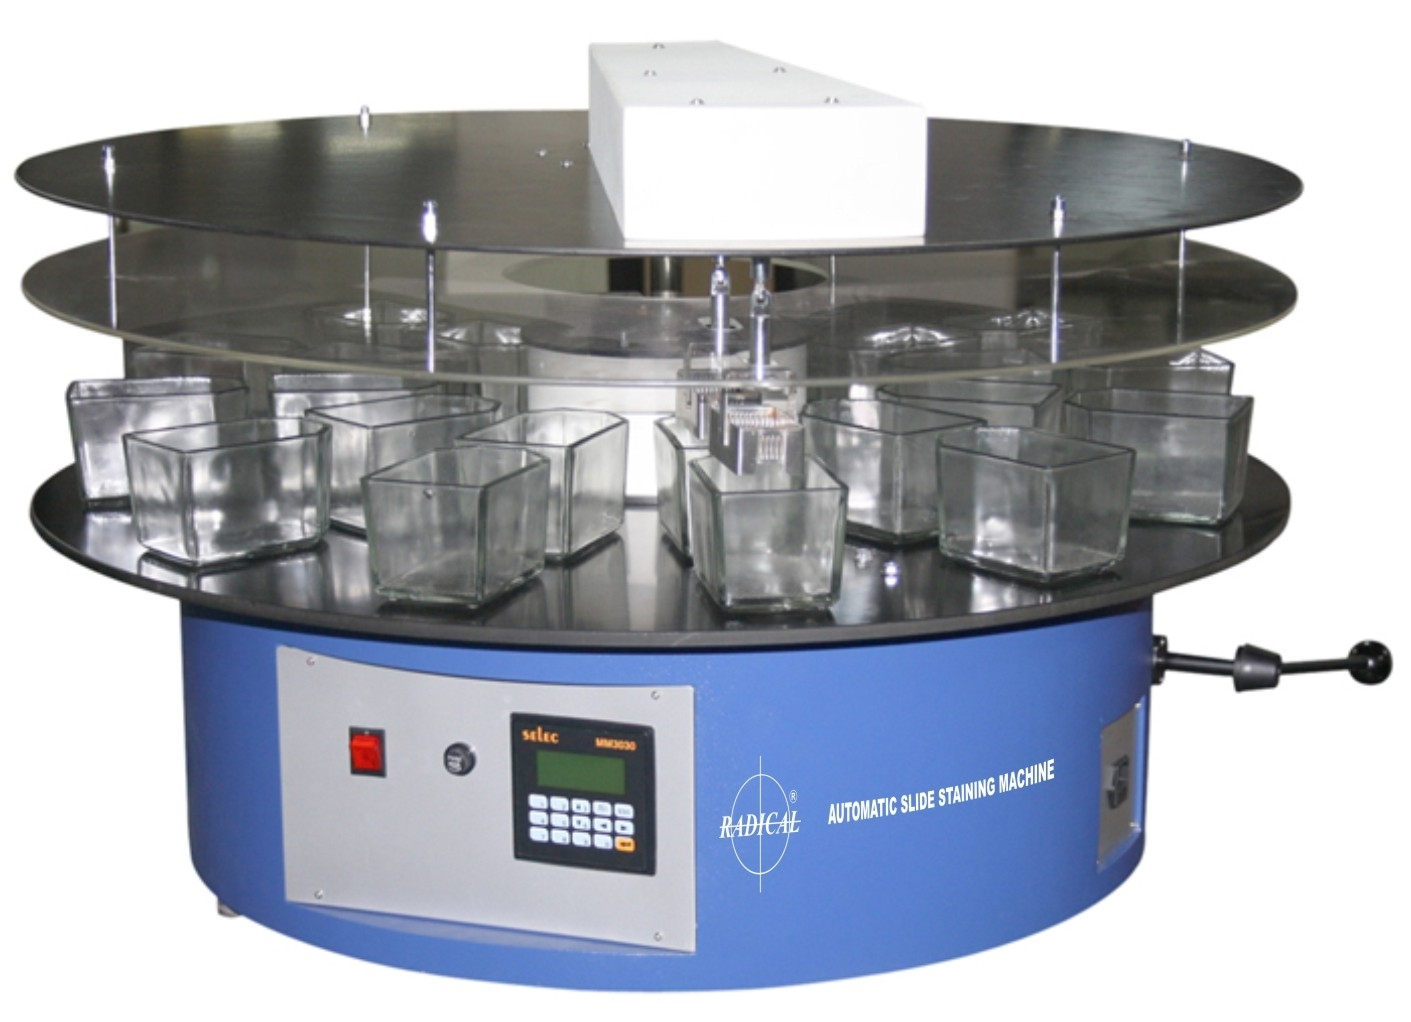 Slide Staining Machine